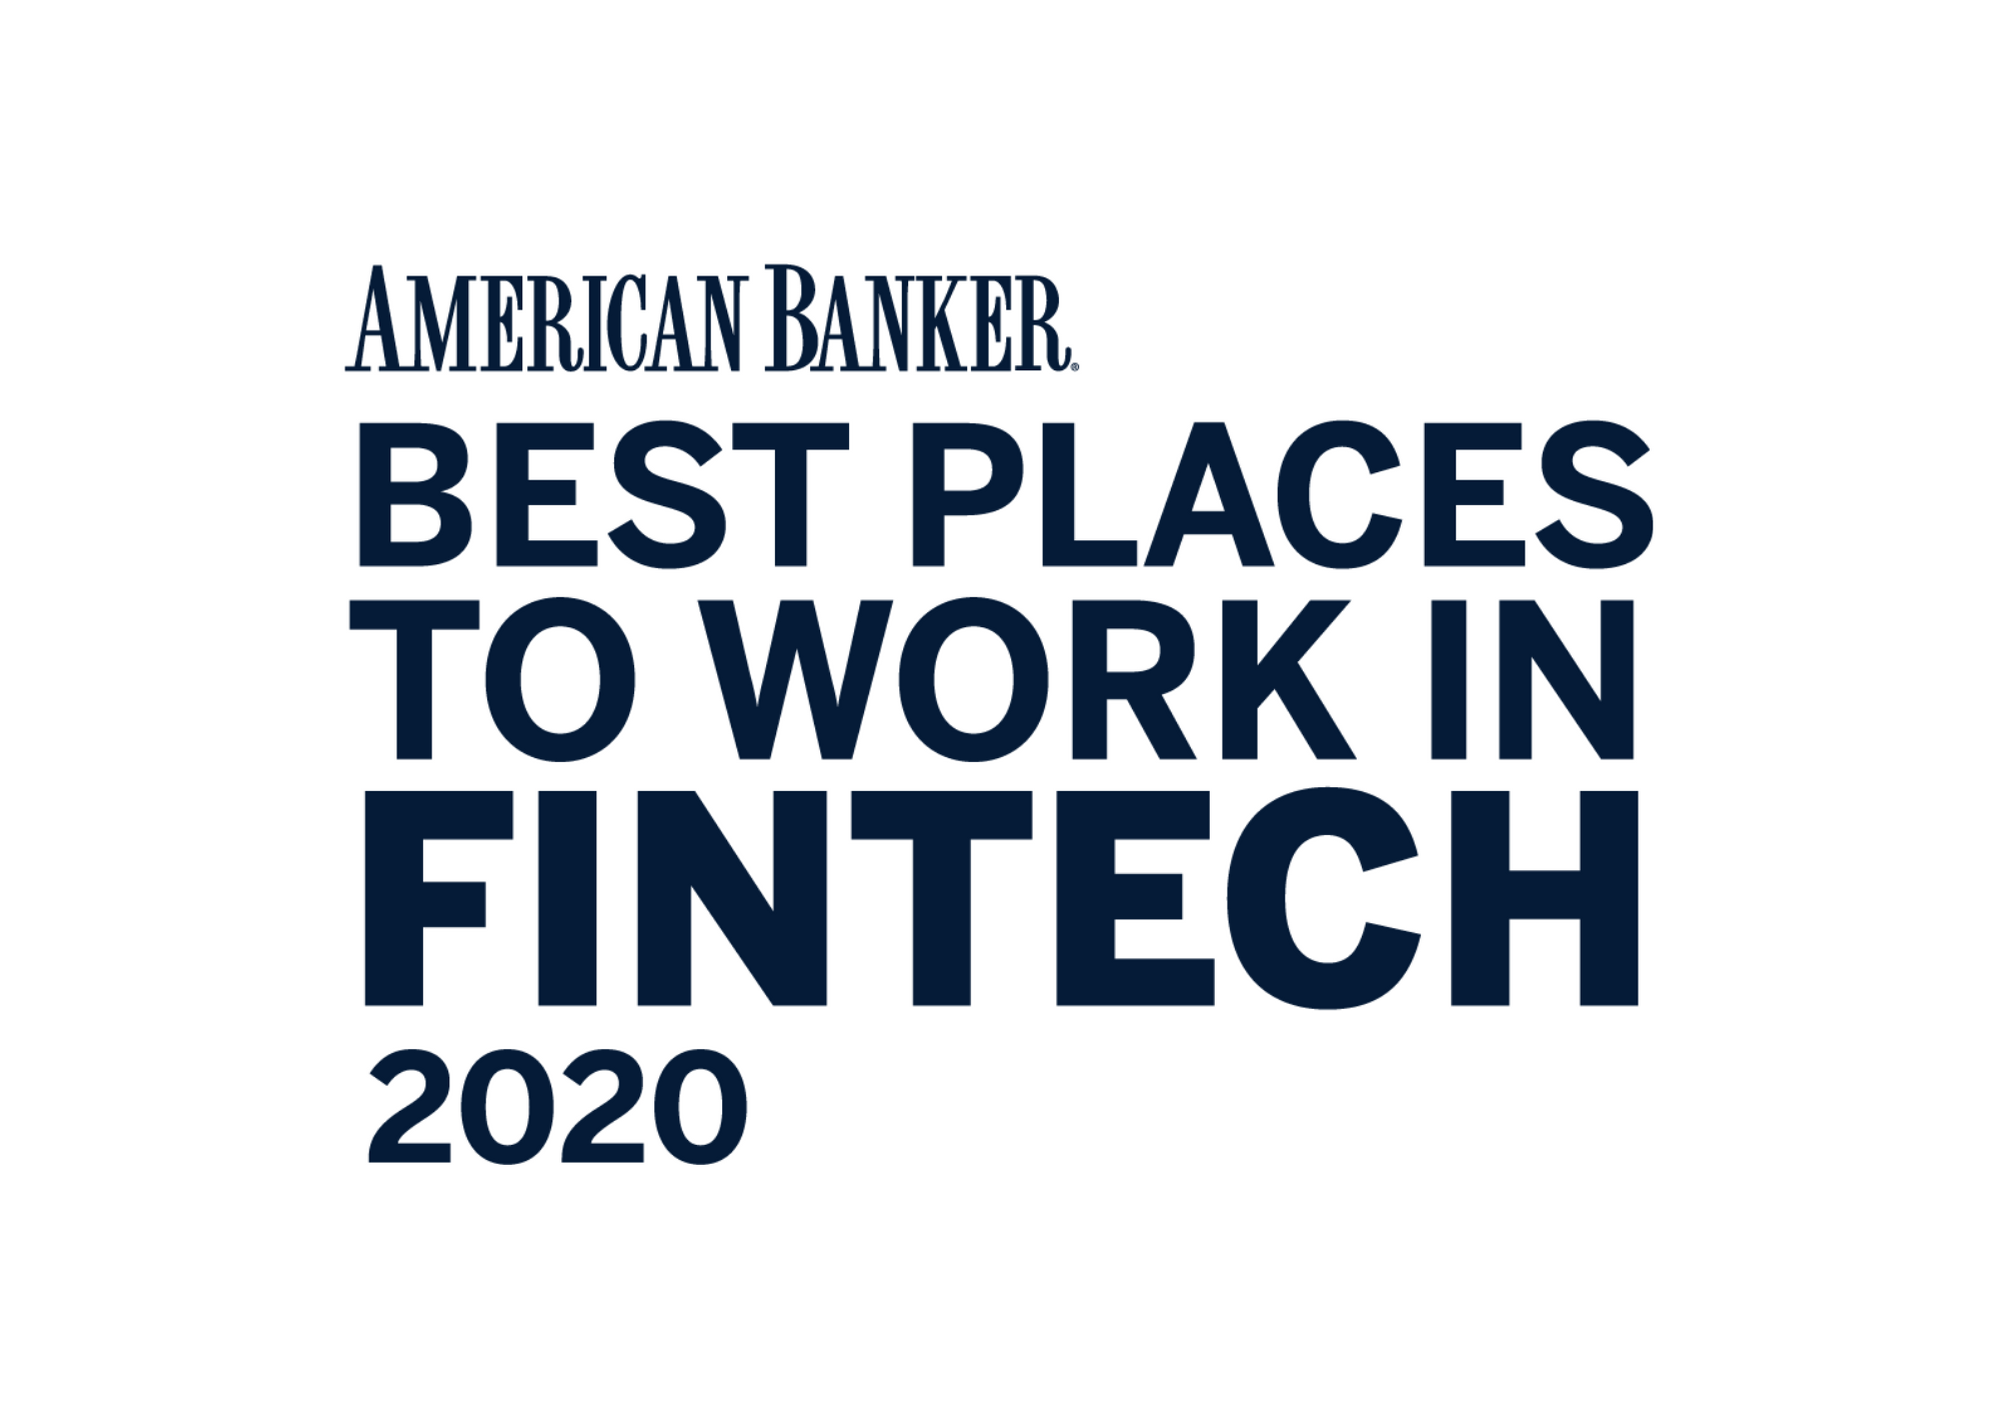 Kasasa Named a 2020 Best Place to Work in Financial Technology by American Banker